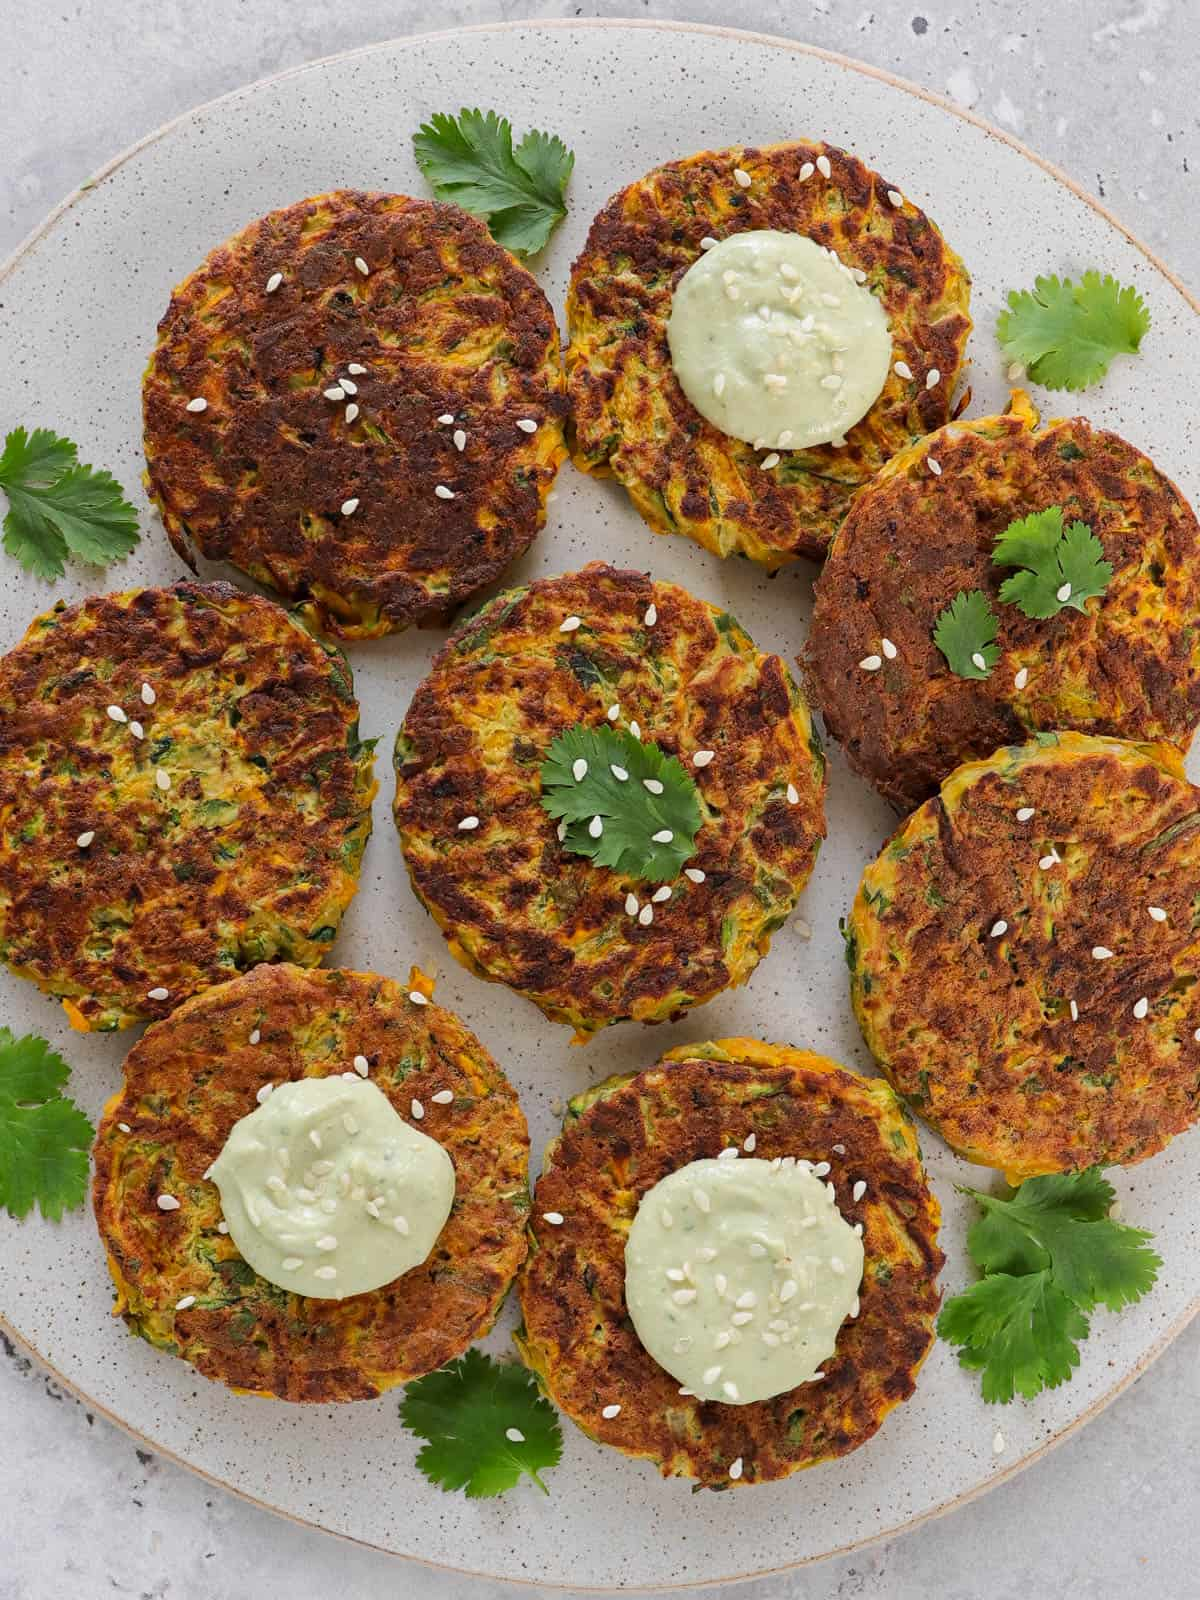 Cooked fritters on a plate with coriander leaves, avocado dip dolloped on top and sprinkled with sesame seeds.